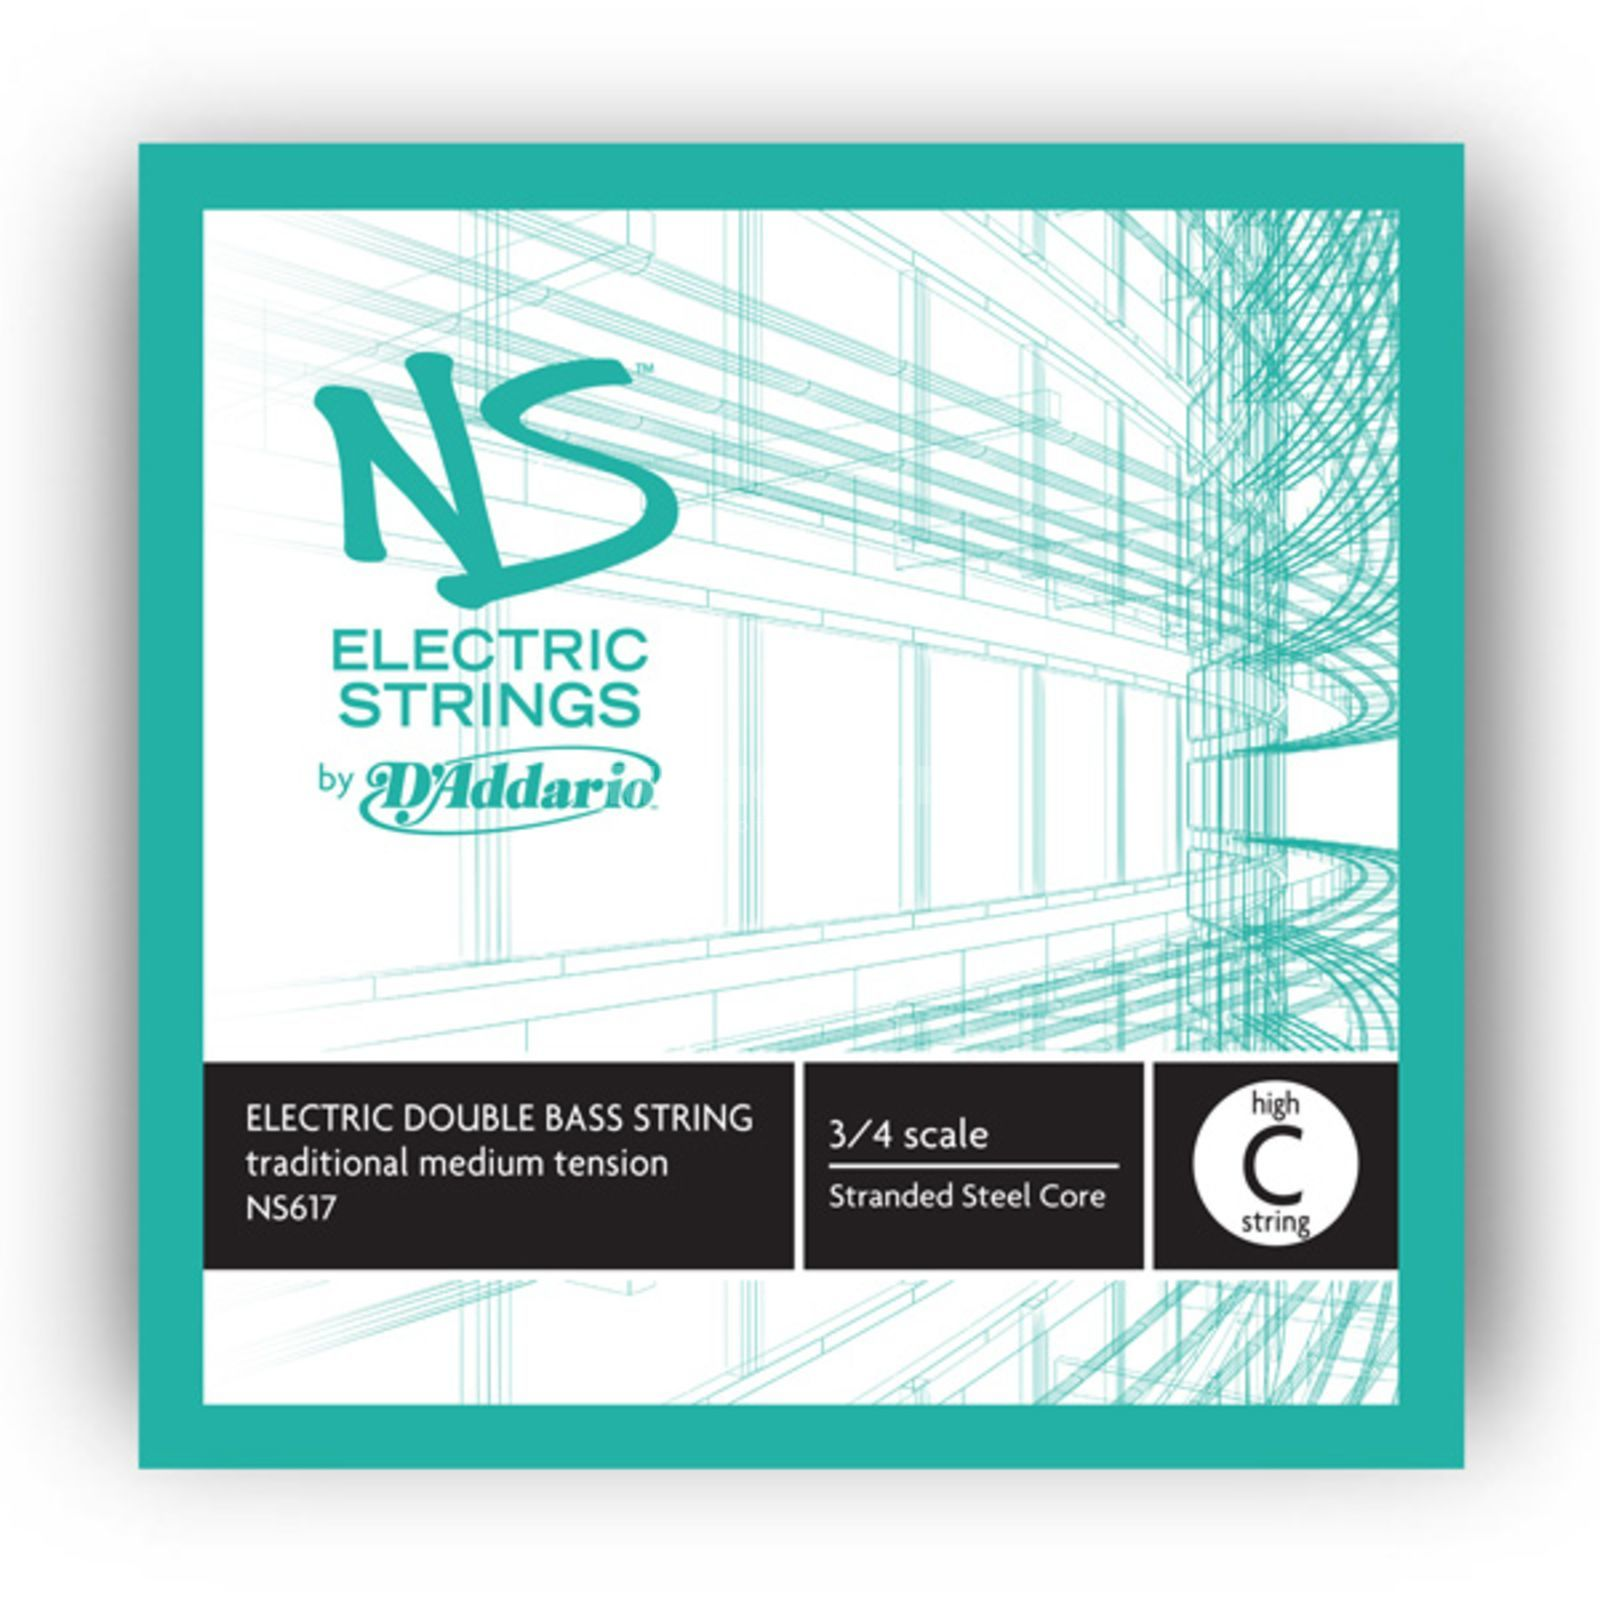 D'Addario NS617 E-Traditional High C Single String Zdjęcie produktu